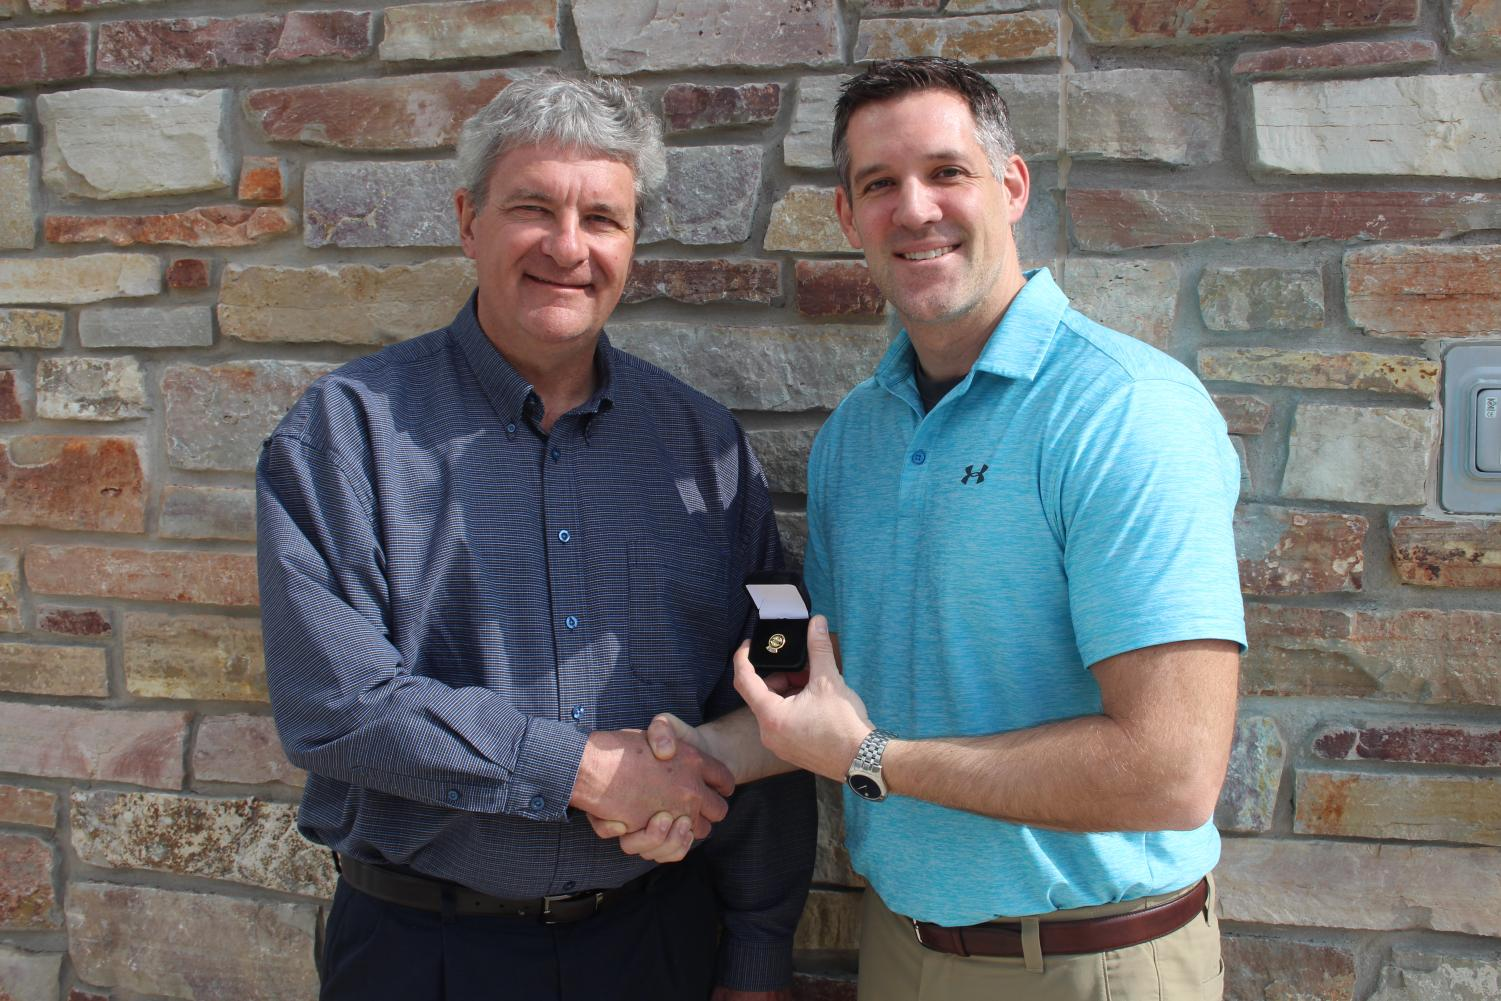 Thanks for the service Dean of Natural Sciences and Business Ron Groleau (left) presents IVCC biology instructor Eric Schroeder (right) with a lapel pin in recognition of his service to Phi Theta Kappa.